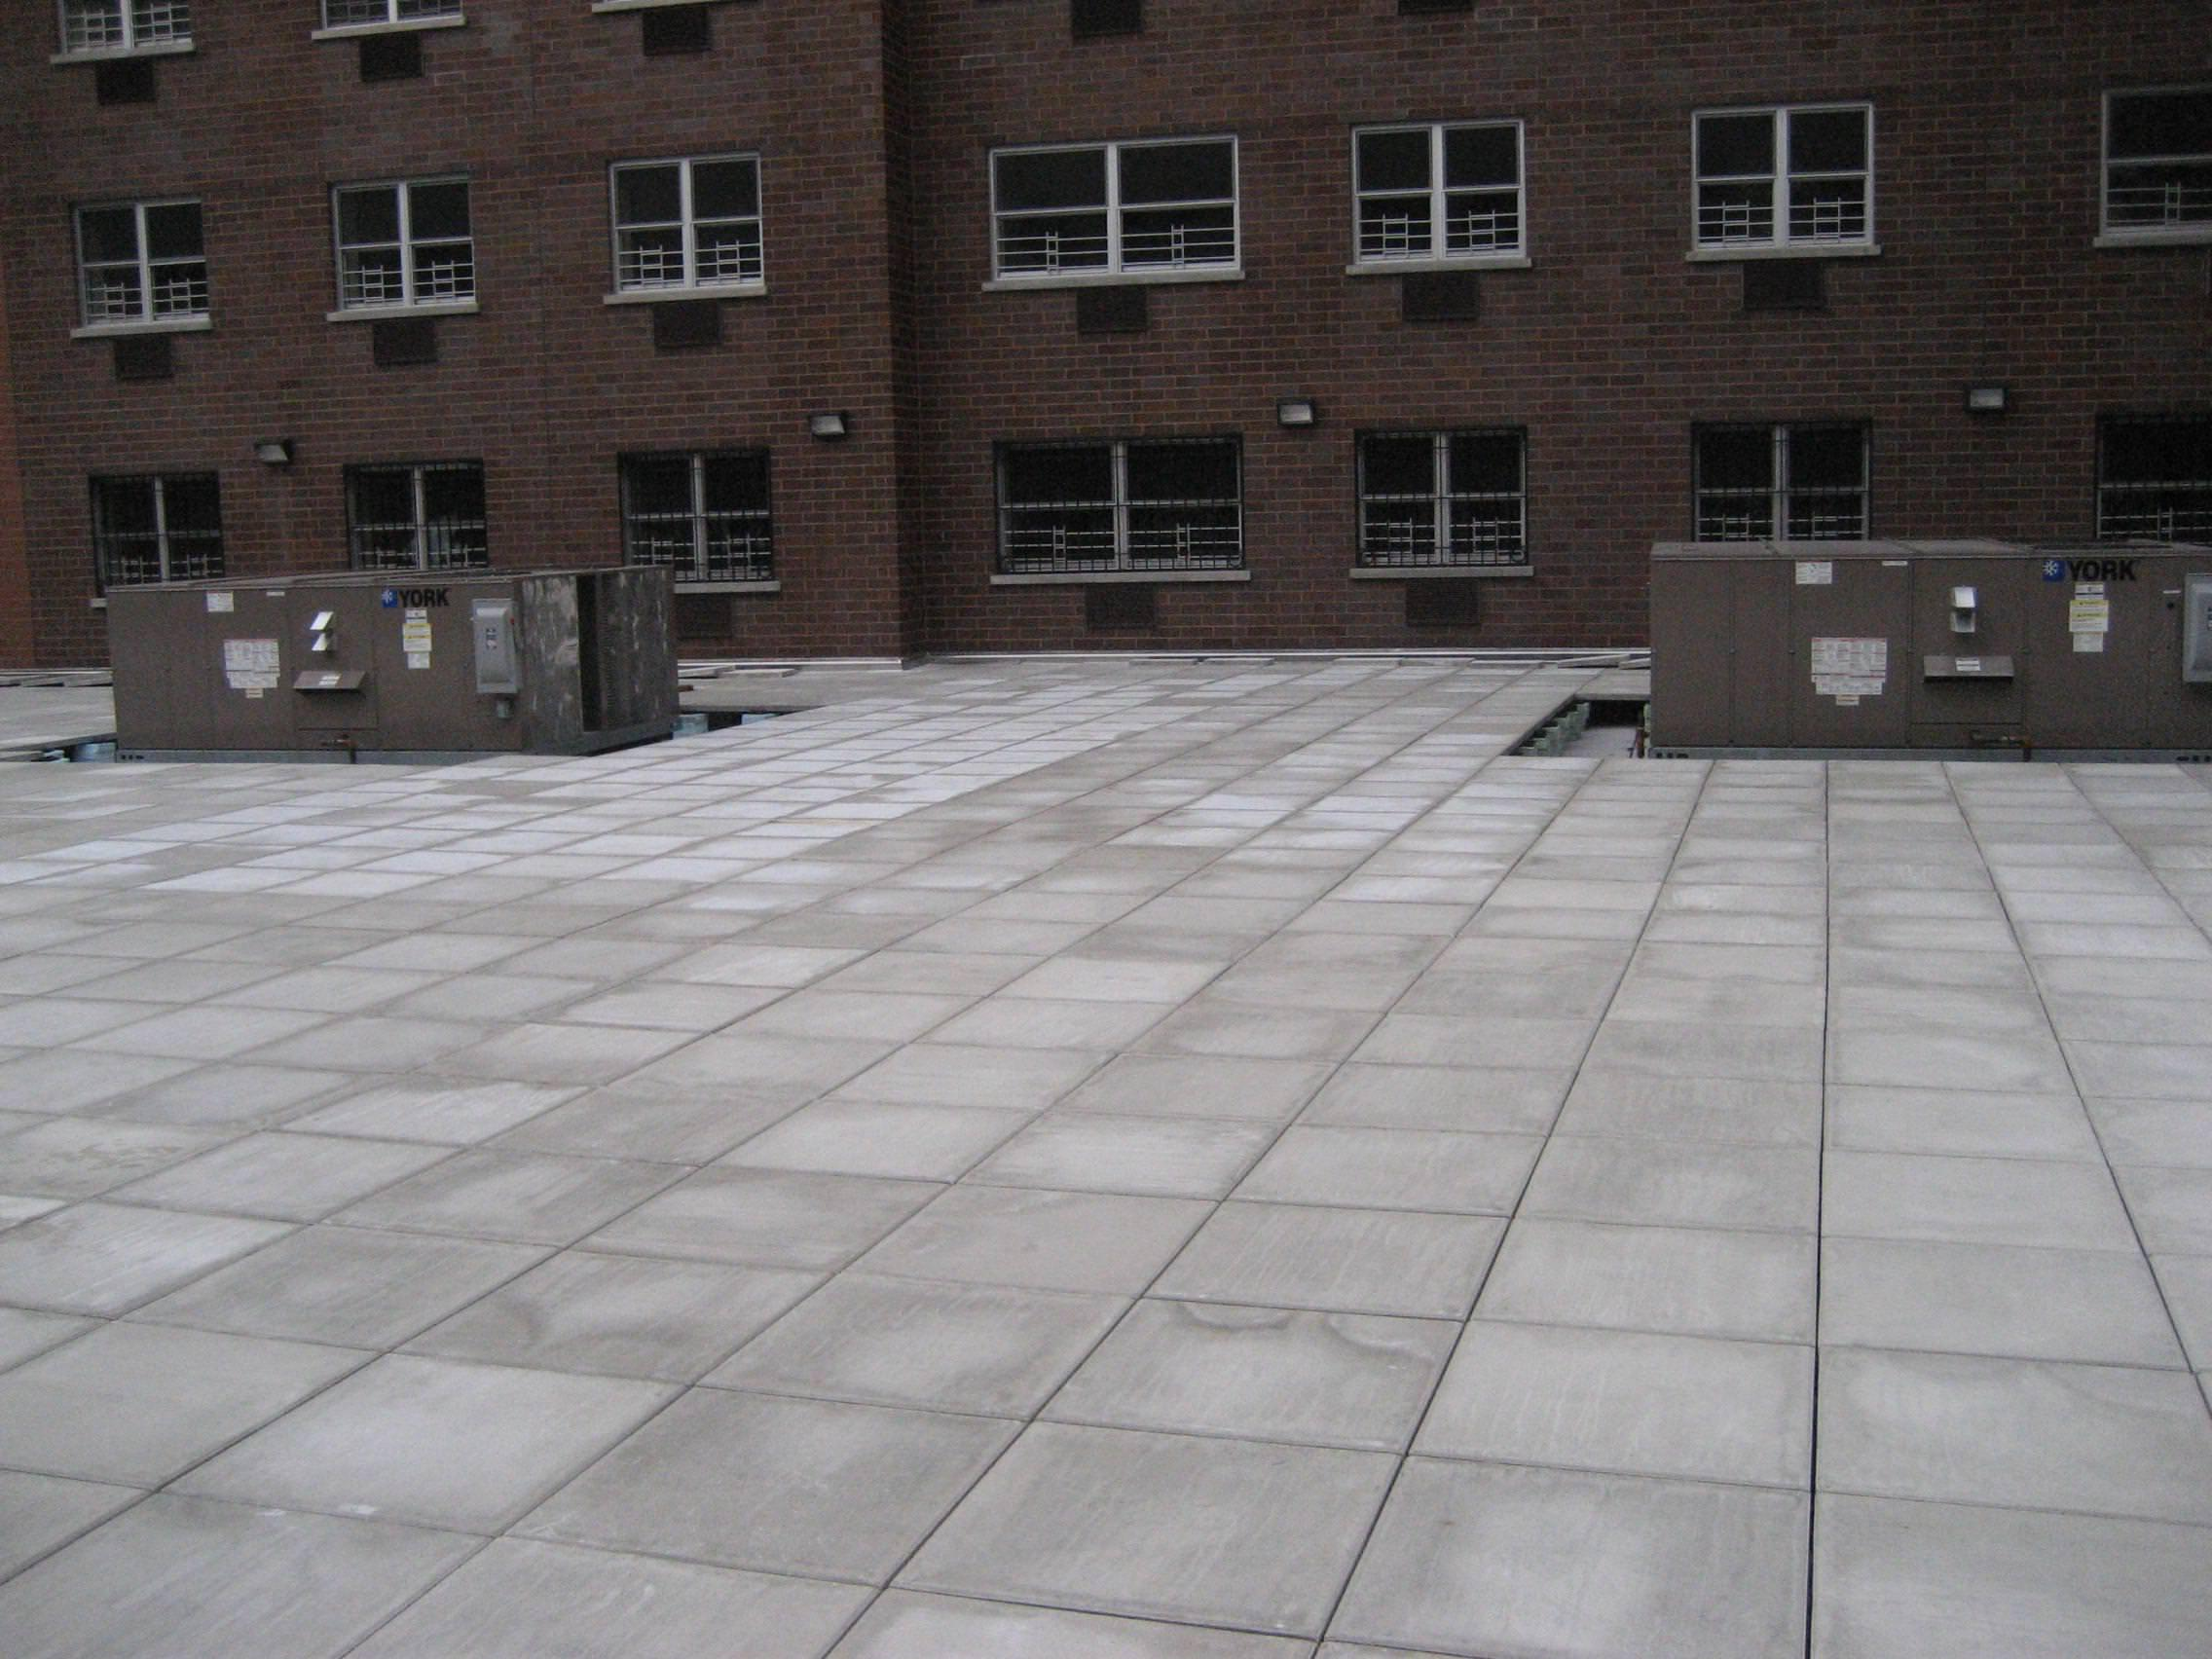 Image of: Cement Pavers With Holes